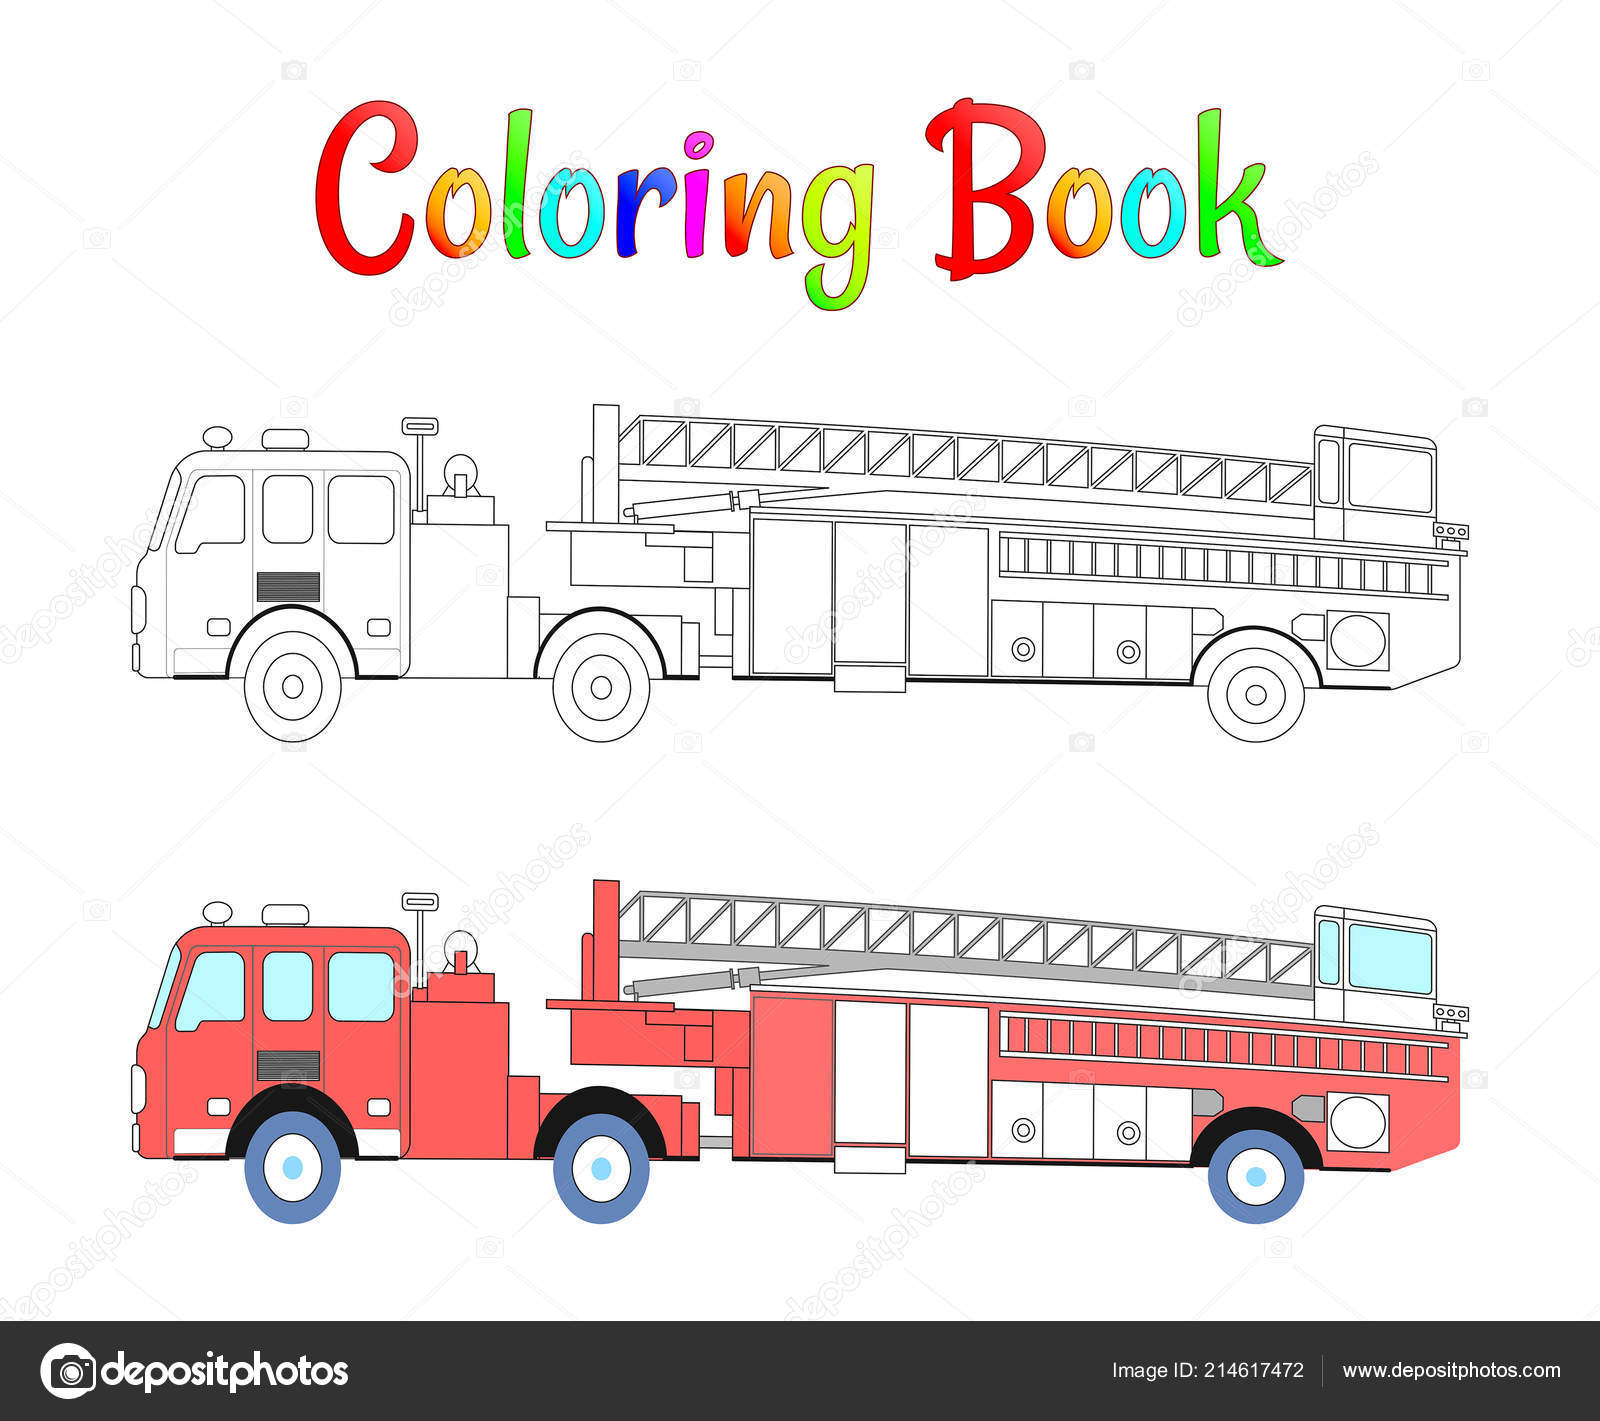 Images Firetruck Coloring Page Fire Truck Coloring Book Vector Coloring Pages For Kids Vector Illustration Eps 10 Stock Vector C Damiengeso 214617472